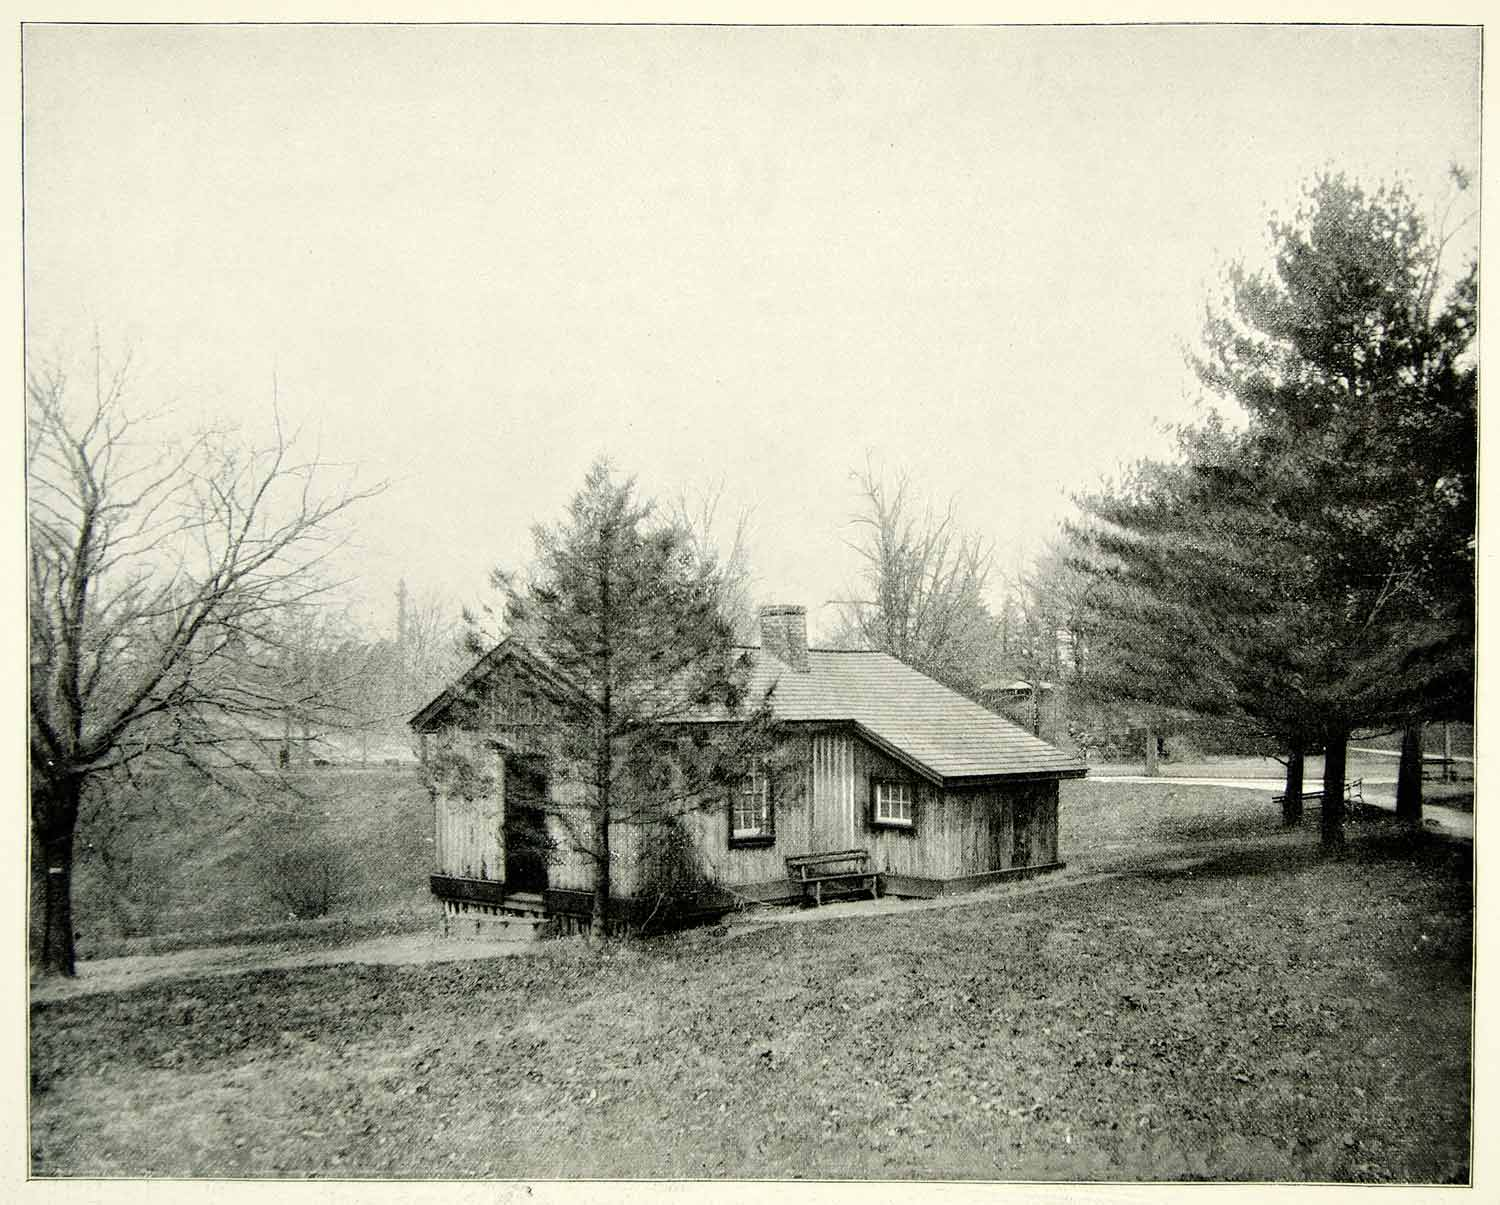 Wonderful image of 1894 Print Ulysses S Grant Log Cabin Fairmount Park Philadelphia PA  with #8B8440 color and 1500x1205 pixels